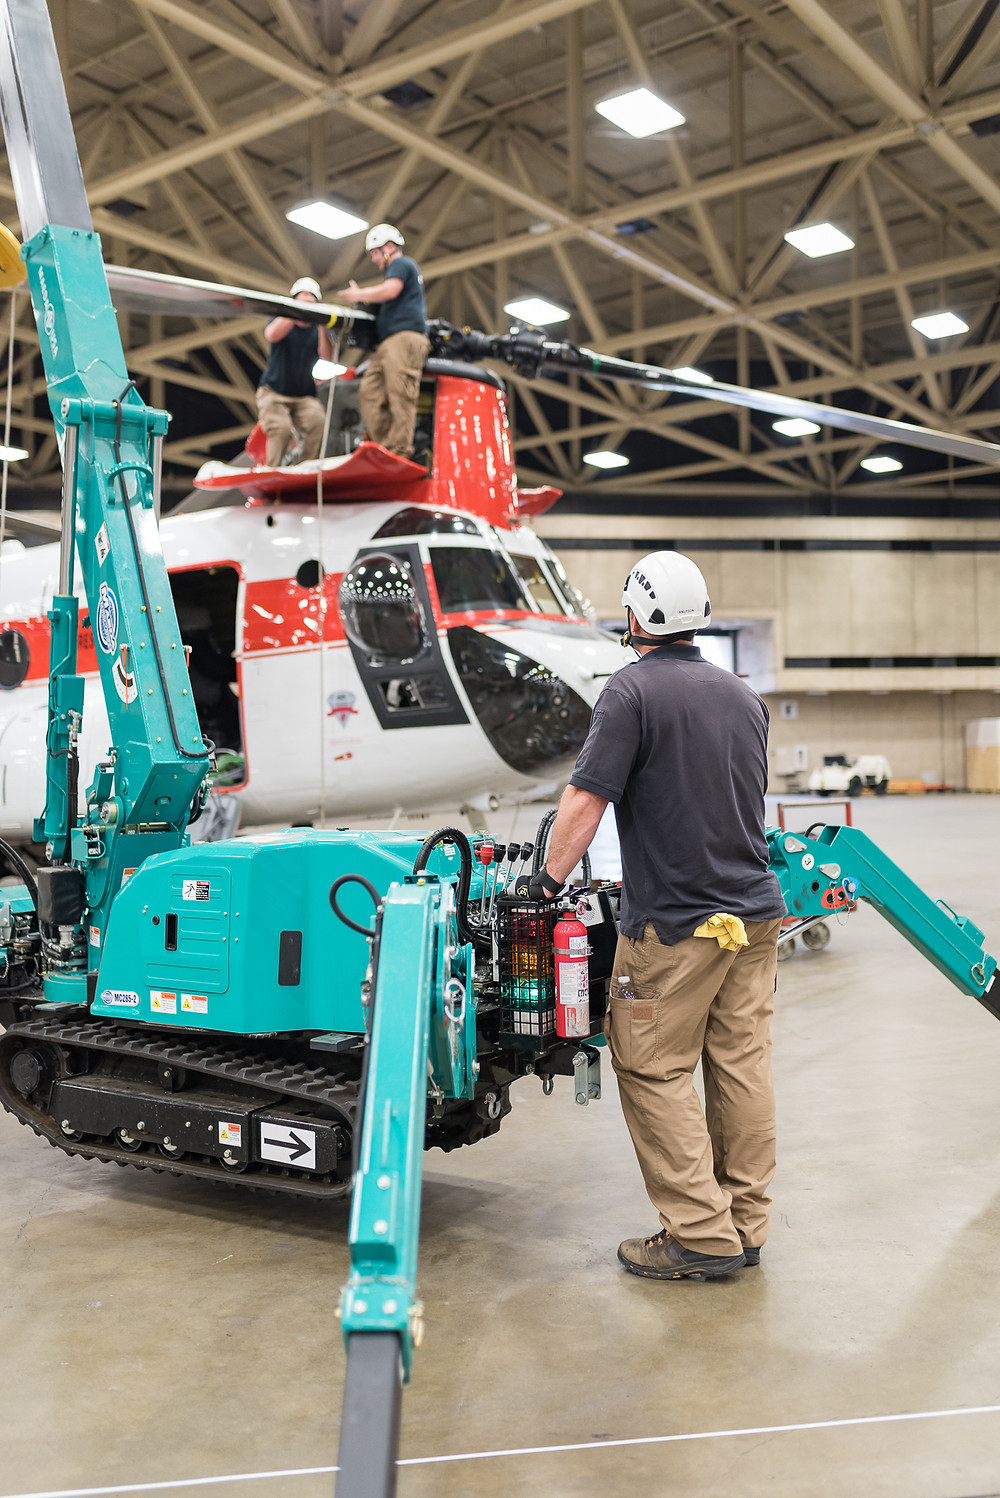 Columbia Helicopters use crane to set up the Chinook for Heli Expo 2017 Dallas TX